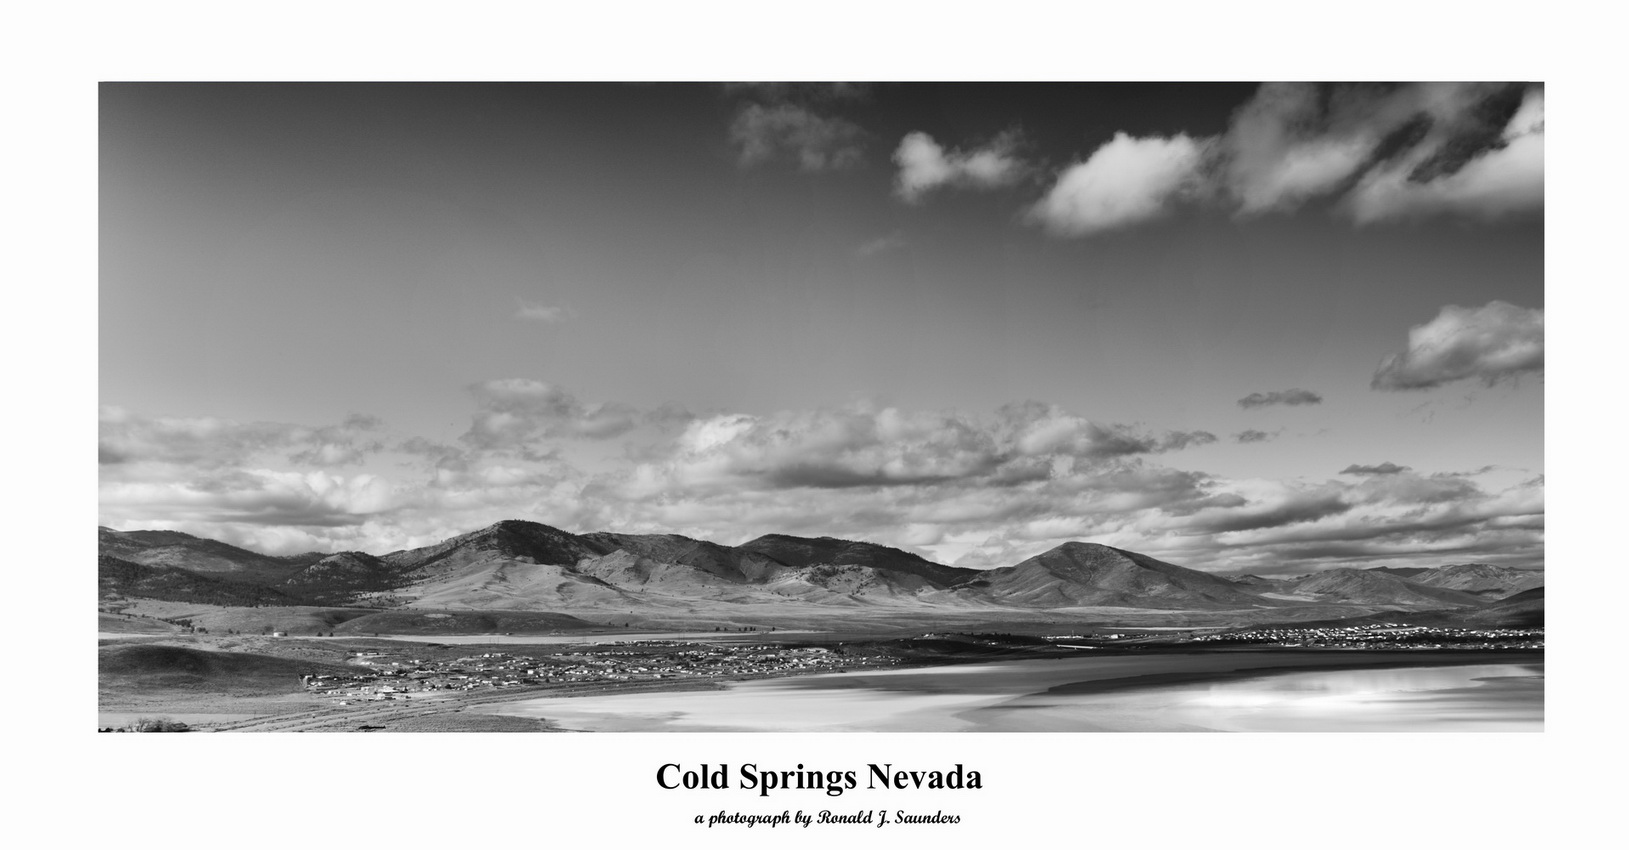 ron, saunders, ronald, ronald j saunders, landscape, photography, nevada, california, image, black, white, exhibition, cold springs, granit hills, Nevada, desert, photography, photo